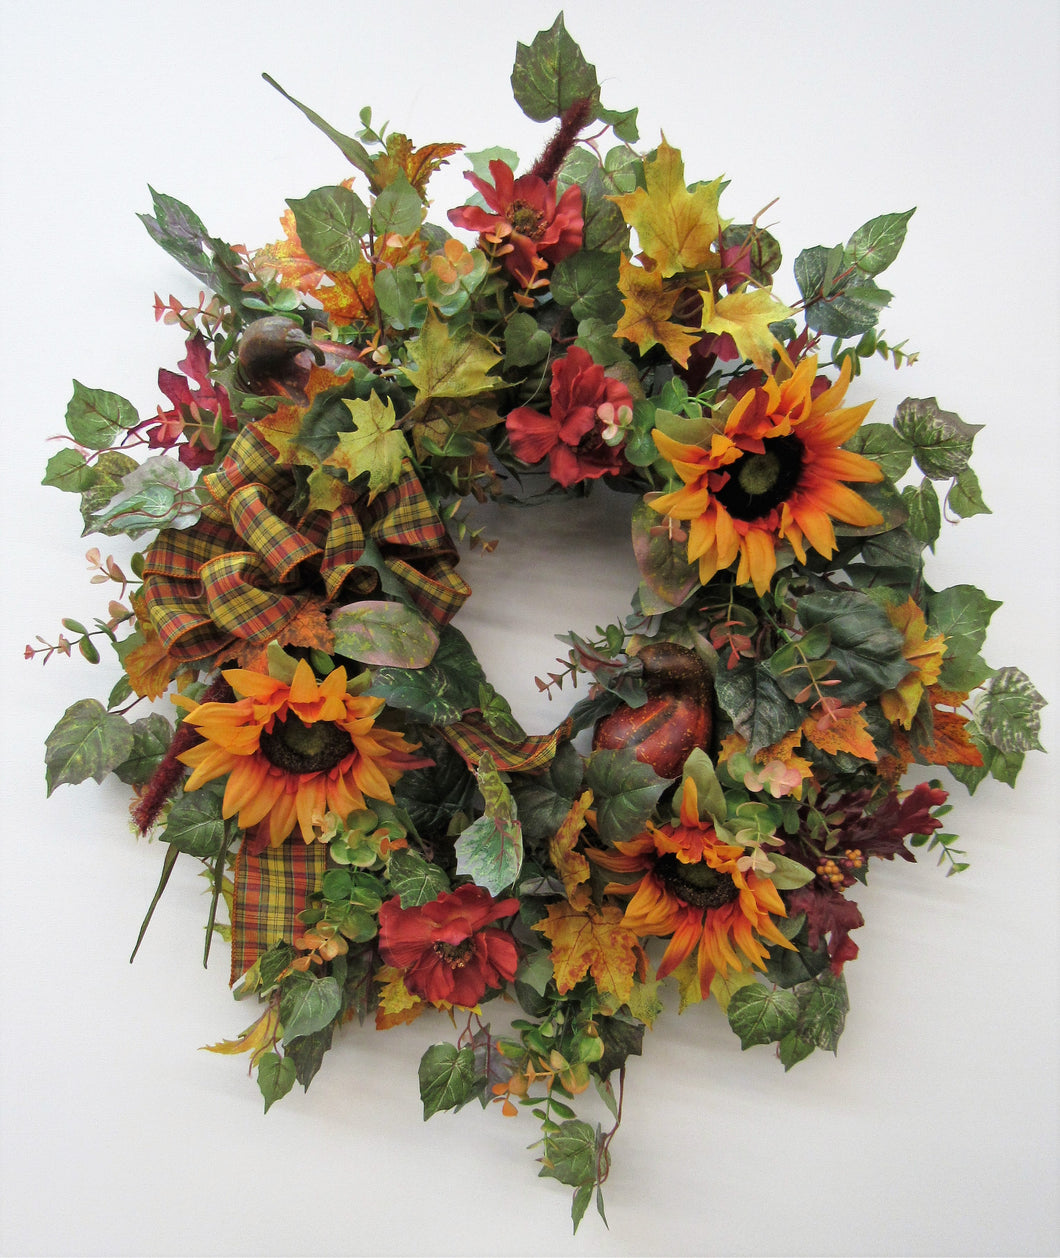 Gallery/Harv69 - April's Garden Wreath